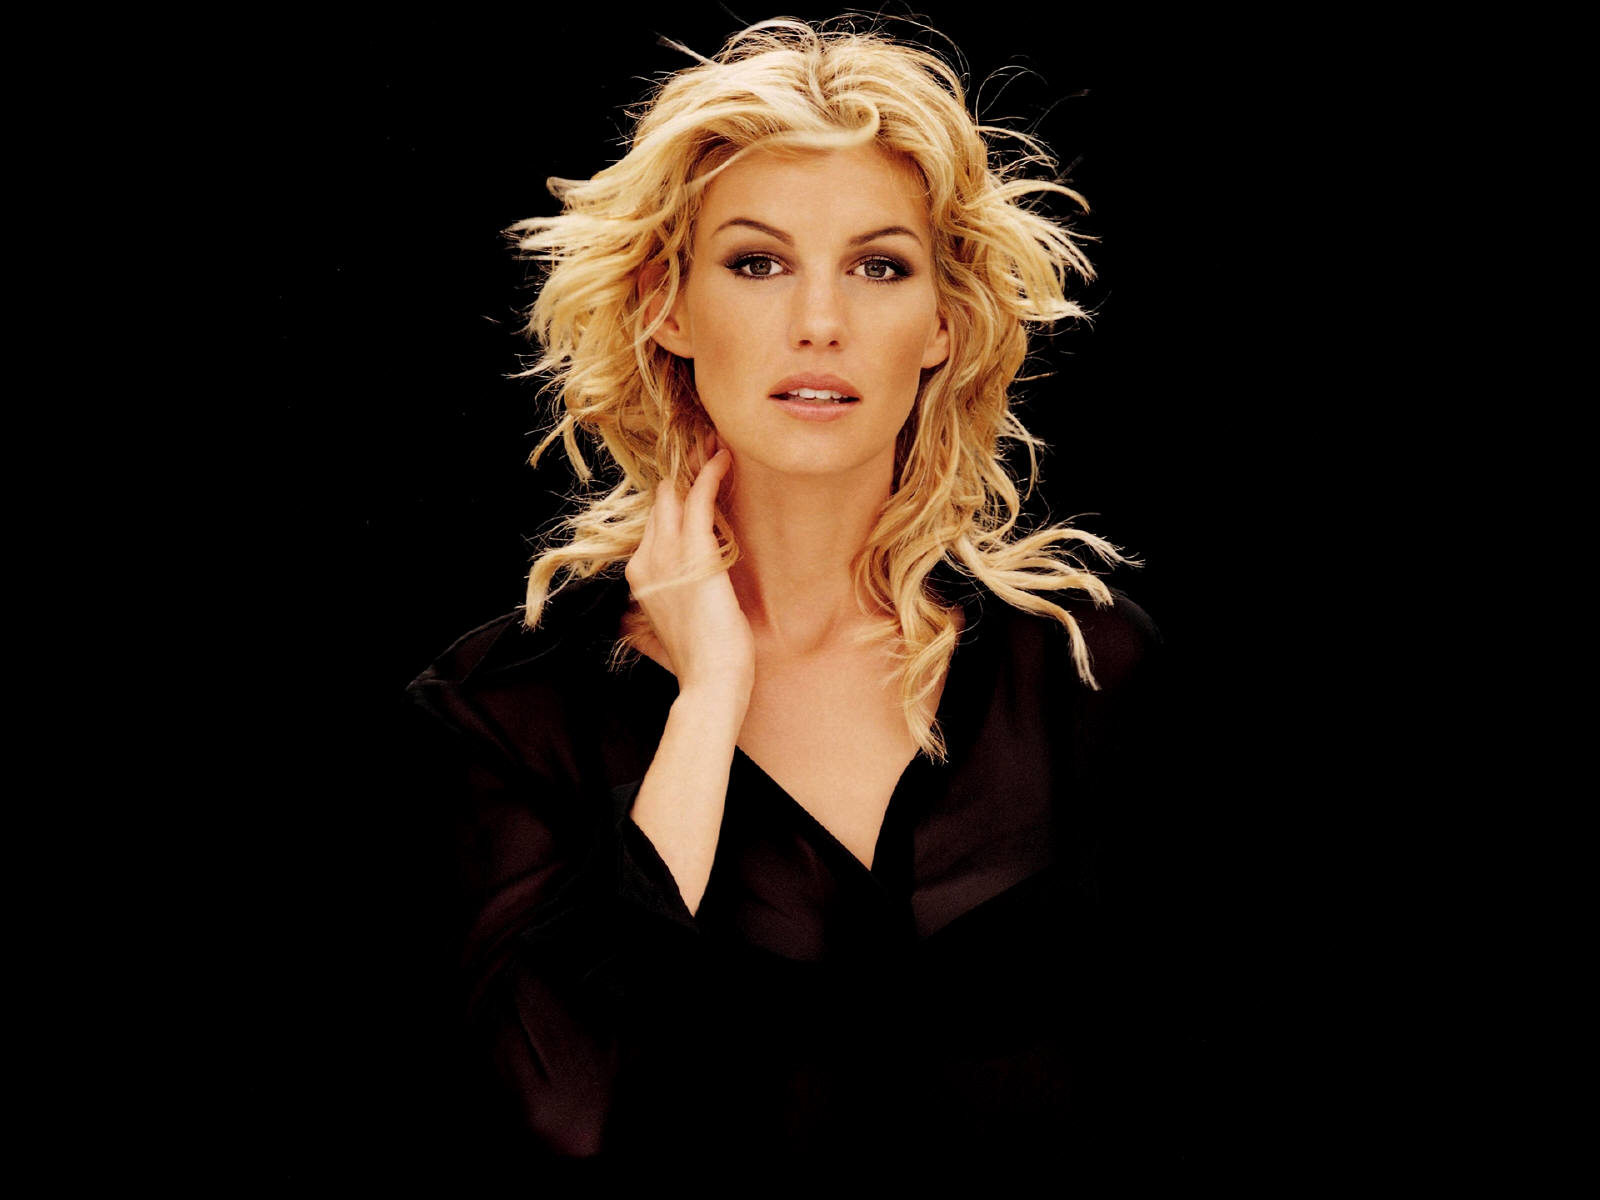 faith hill desktop background 1211